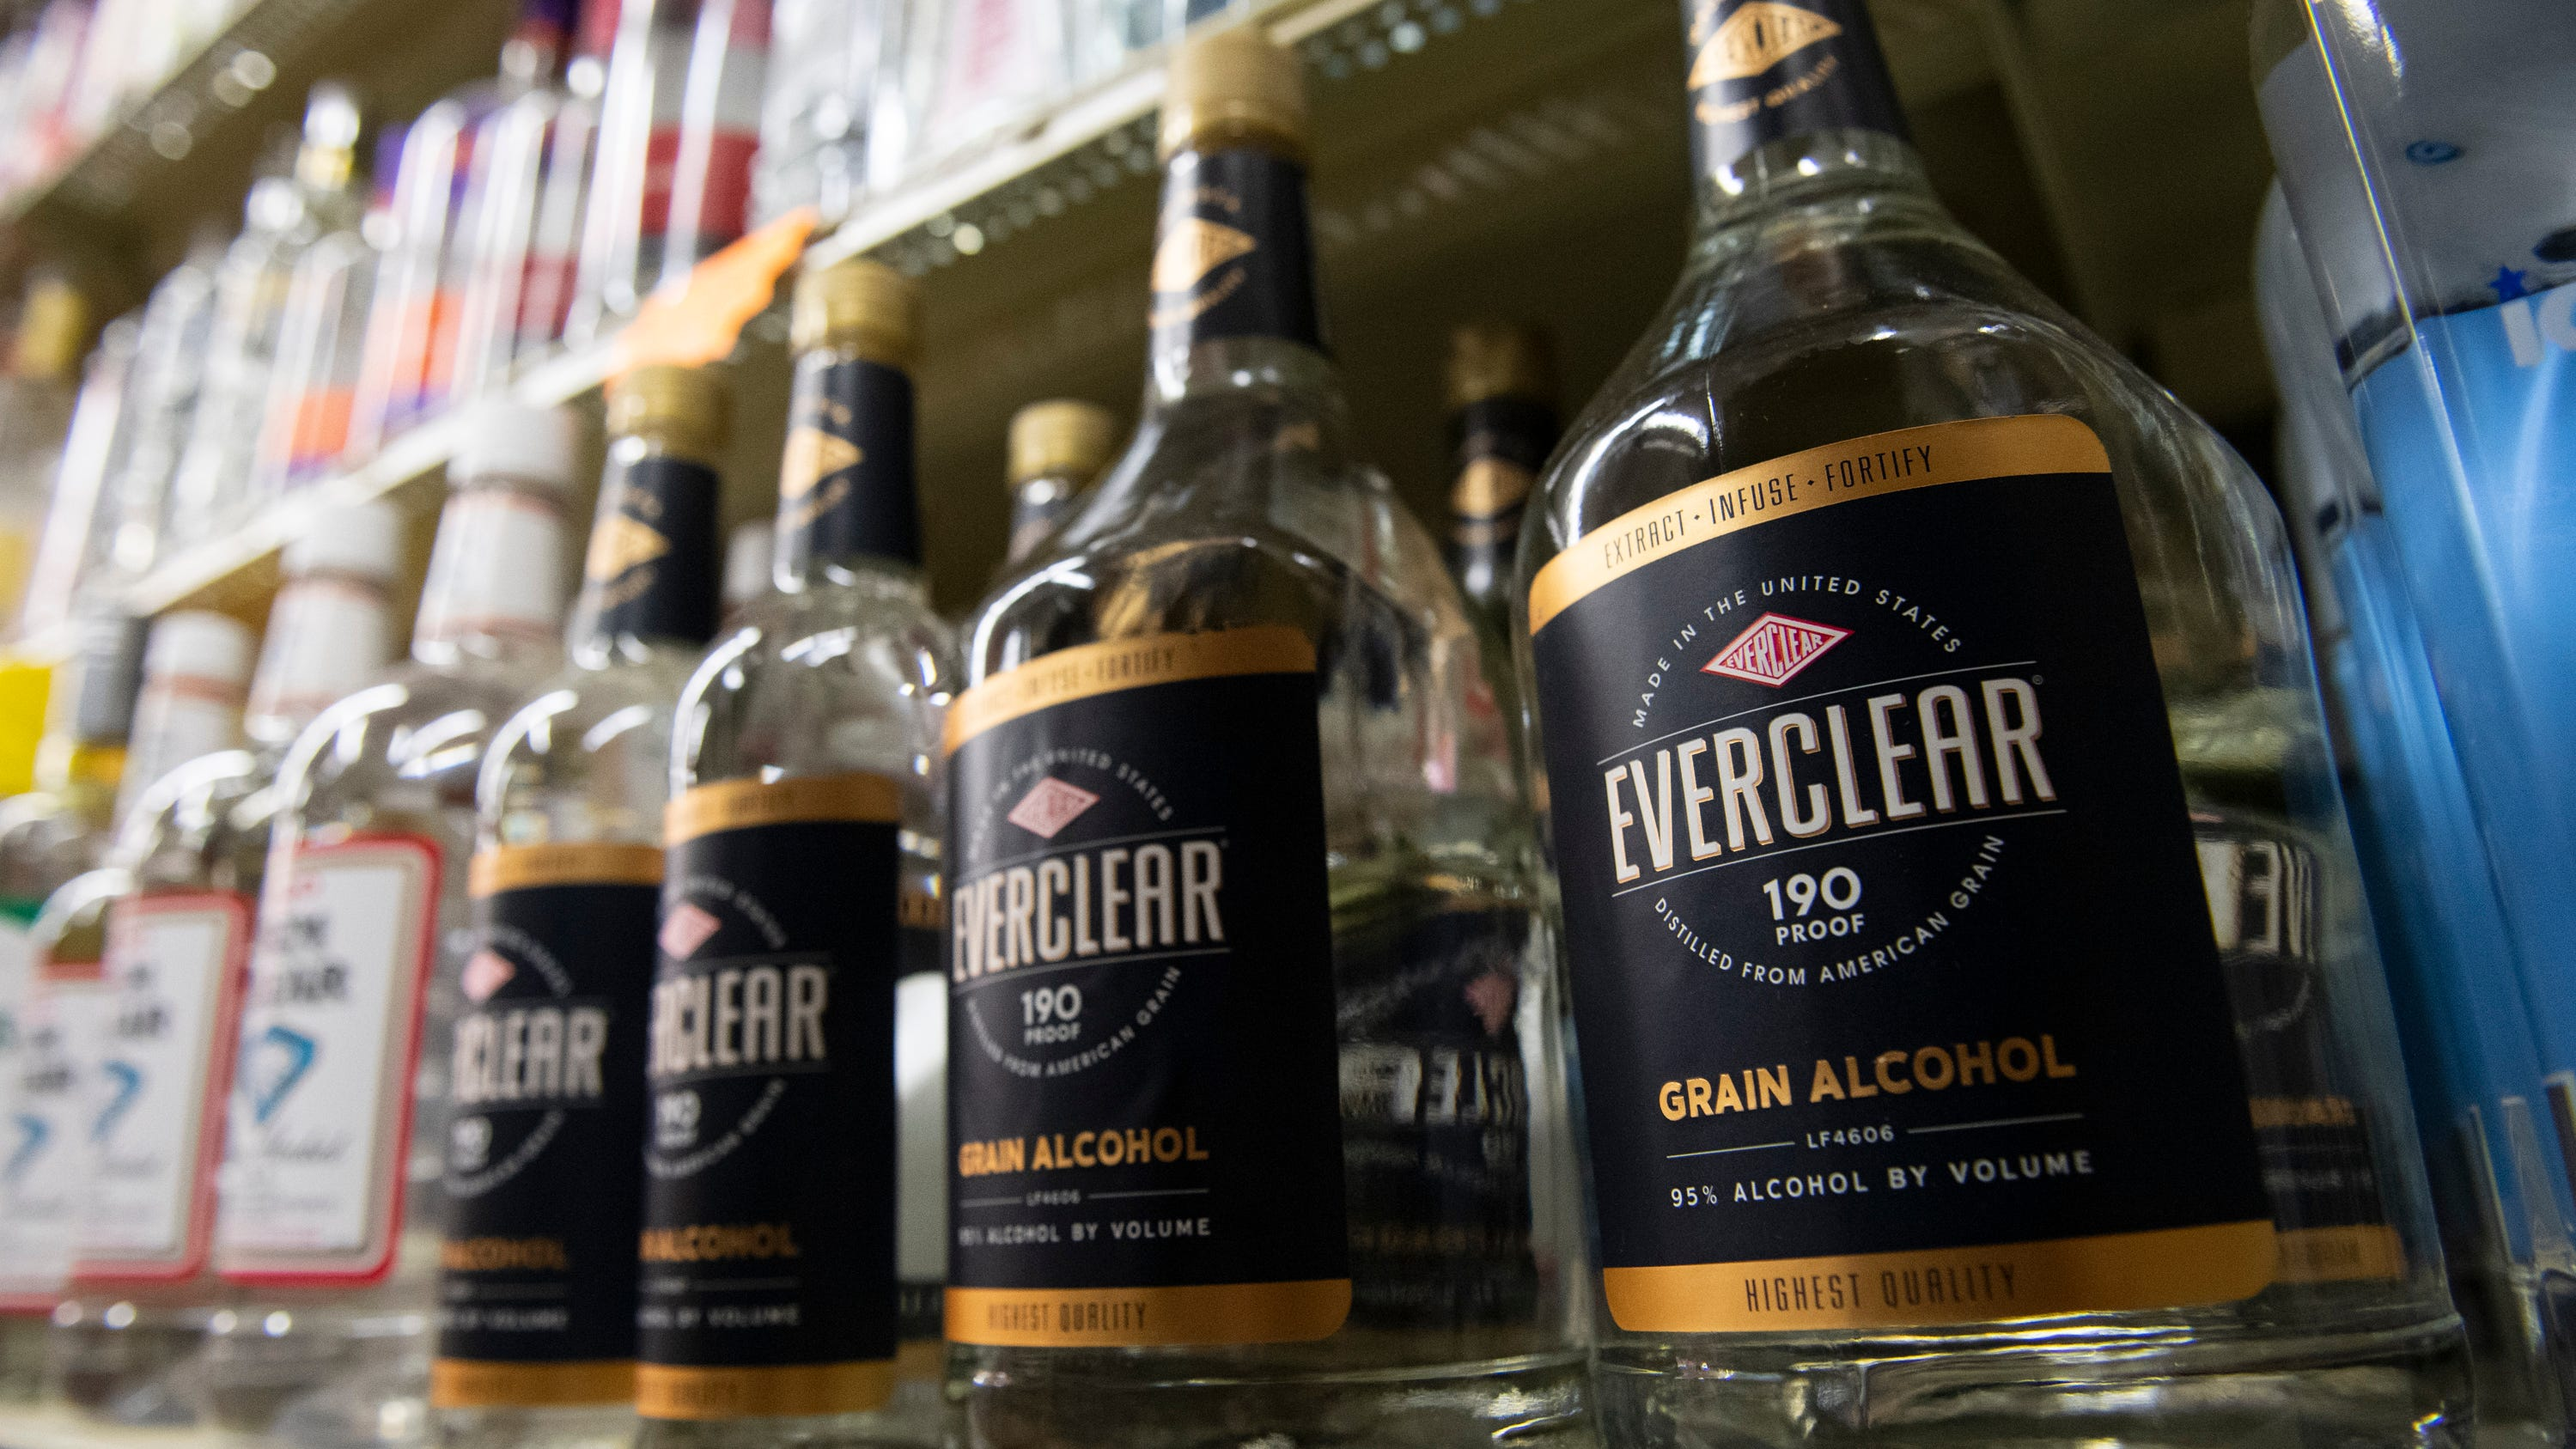 Are liquor stores open during coronavirus? New York says liquor stores are 'essential,' can stay open - USA TODAY